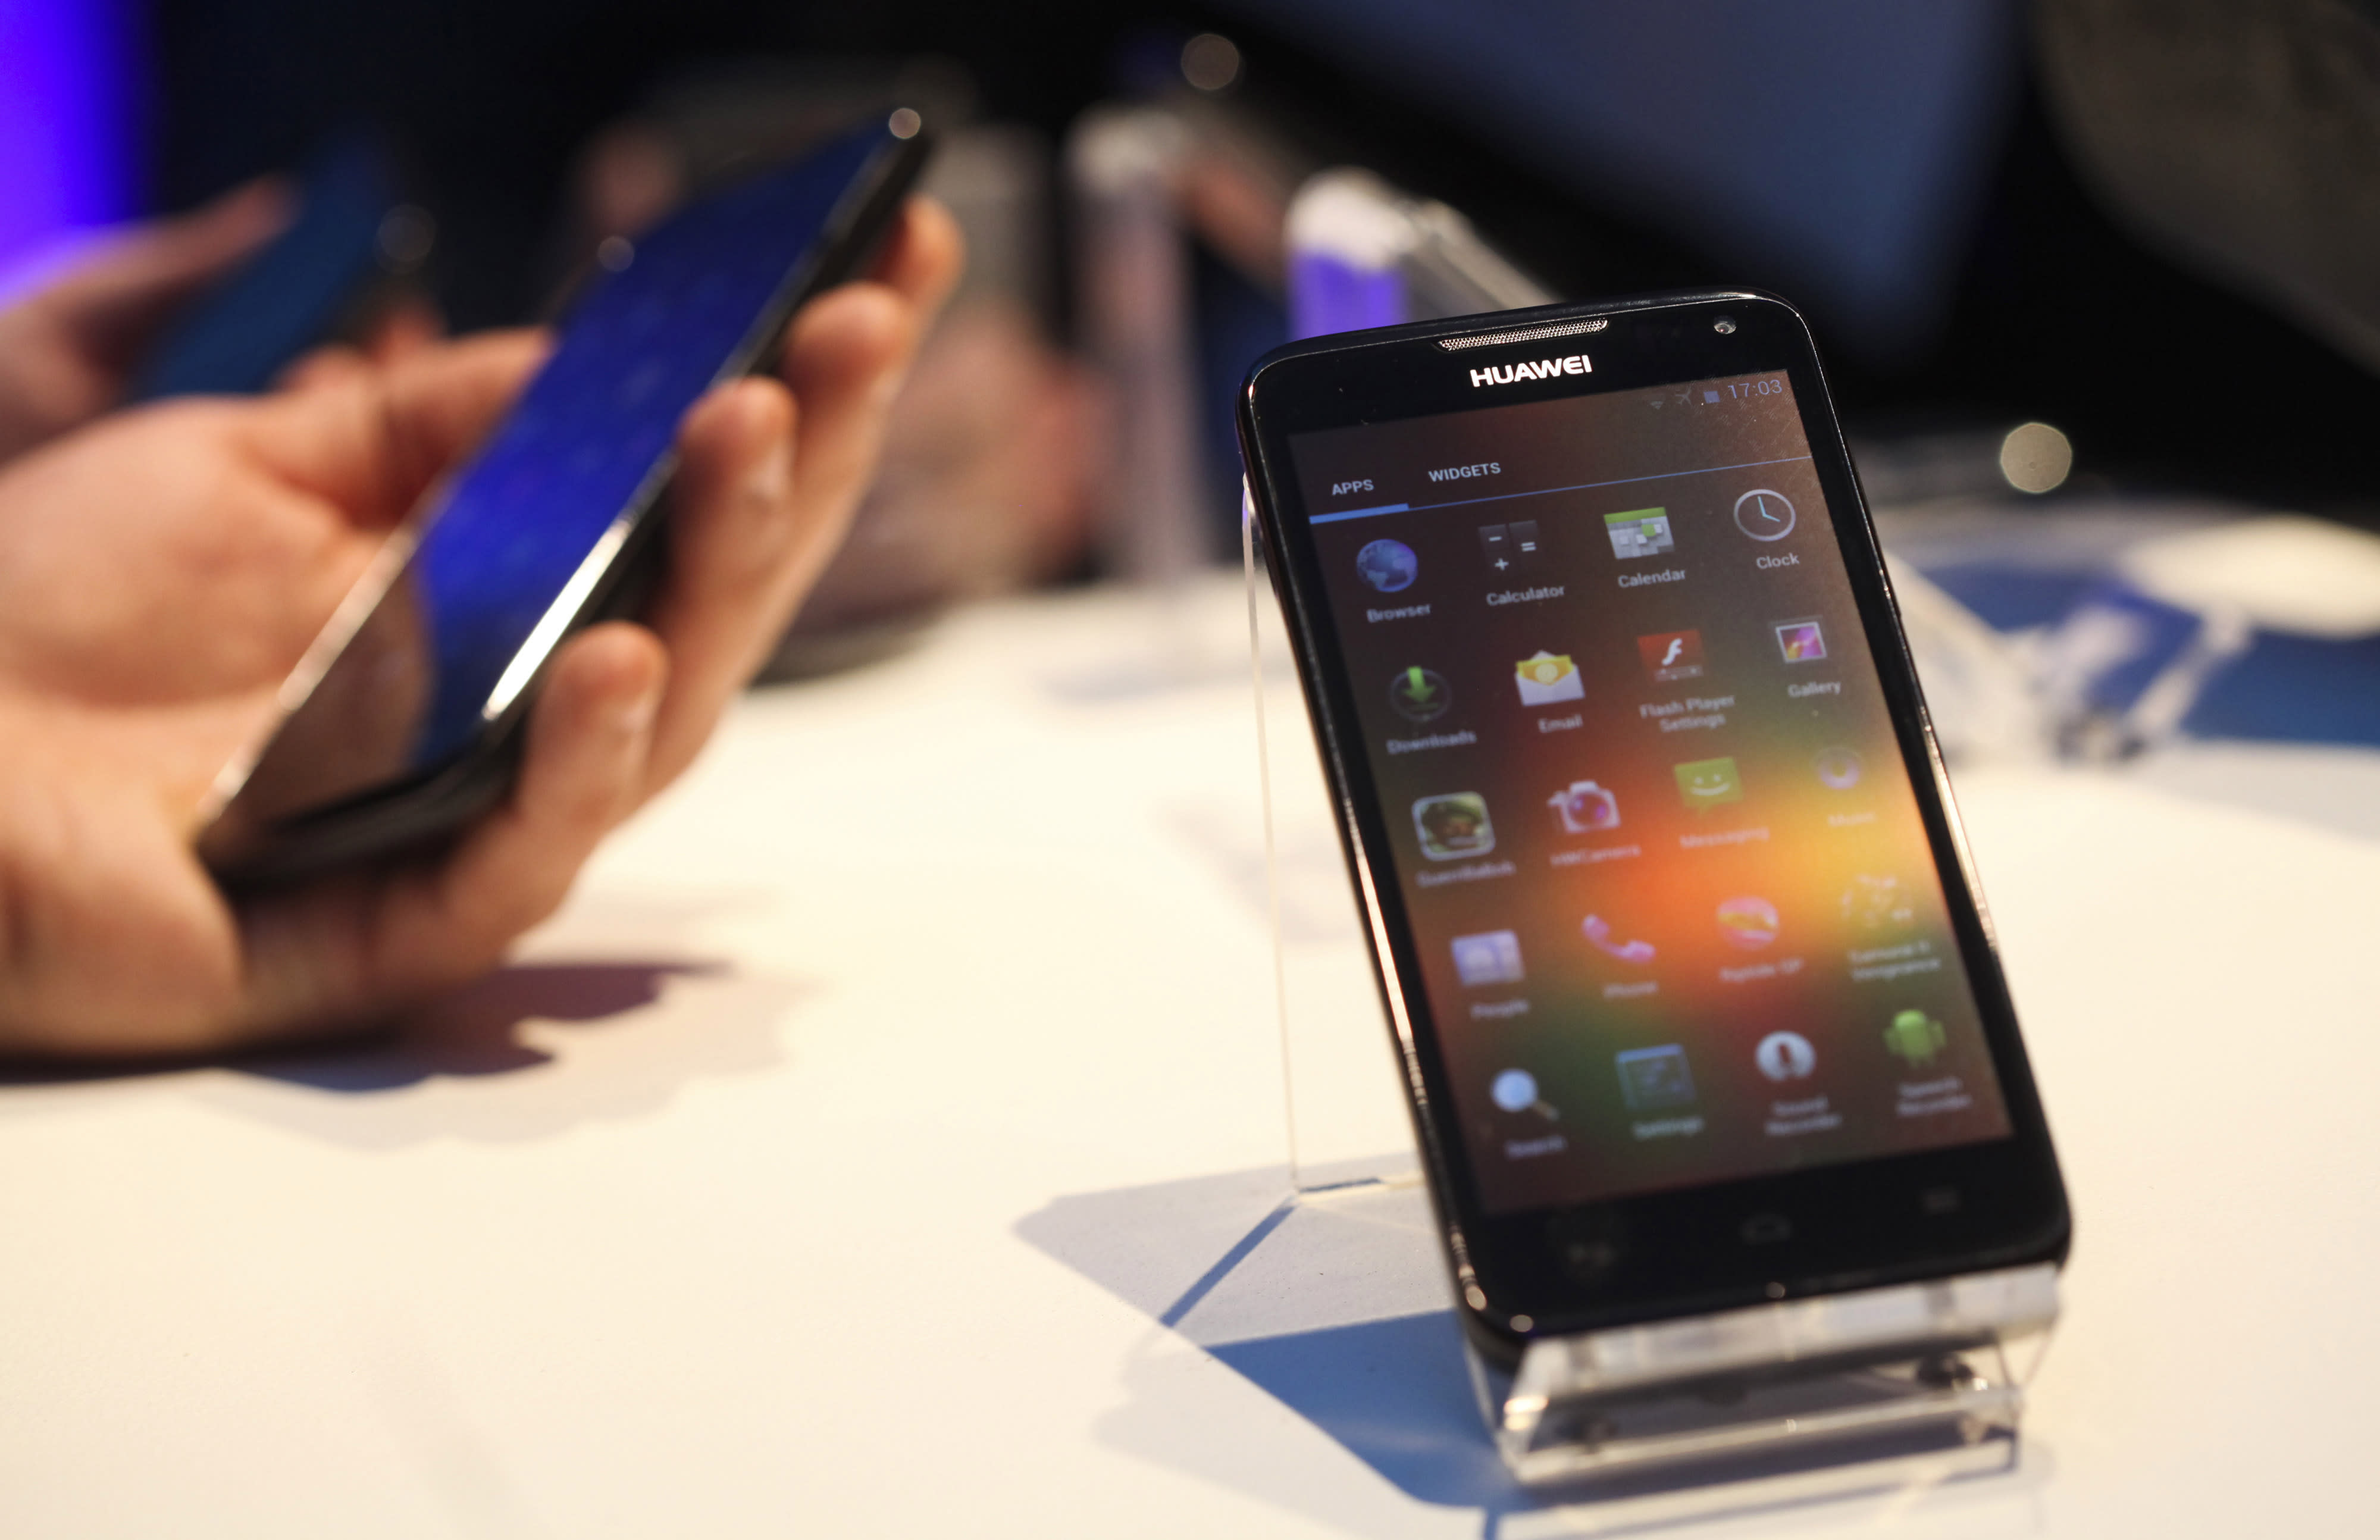 A Huawei Technologies Co. mobile phone, which runs on the Android operating system.